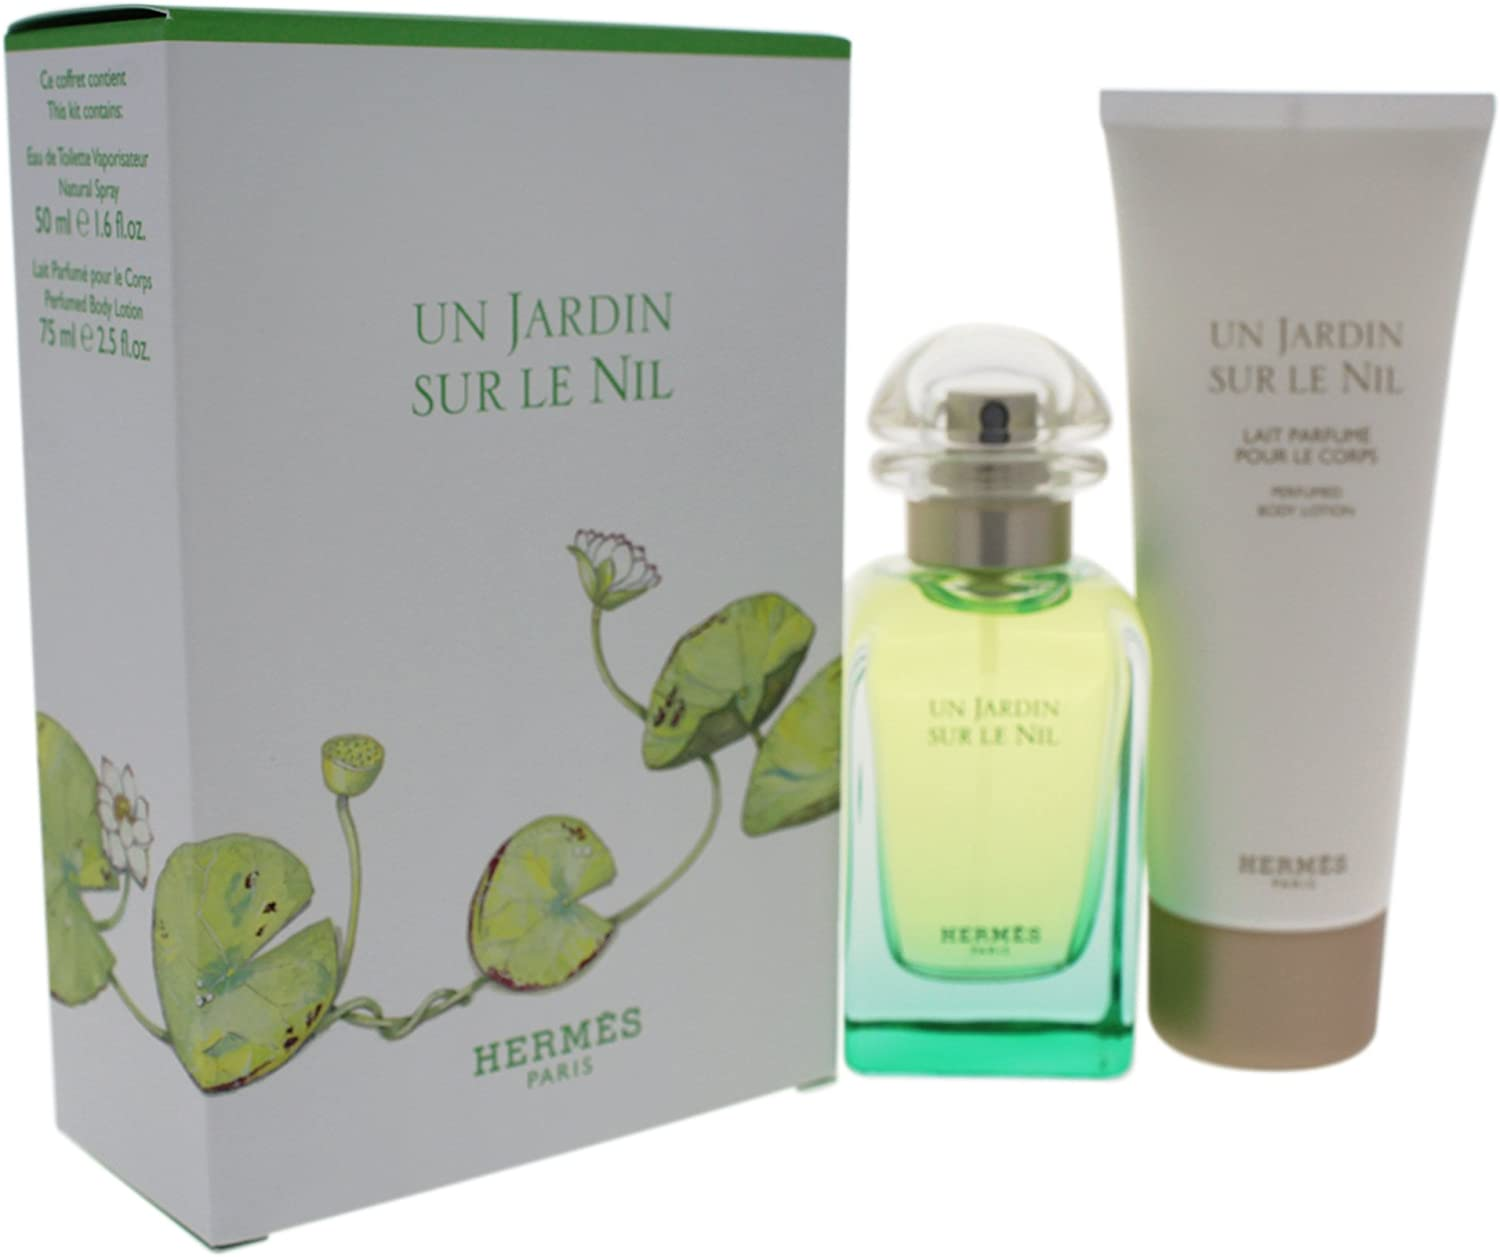 Un jardin sur le nil 2 stk. Geschenk-set (eau de toilette spray 1,6, o.: Amazon.es: Belleza